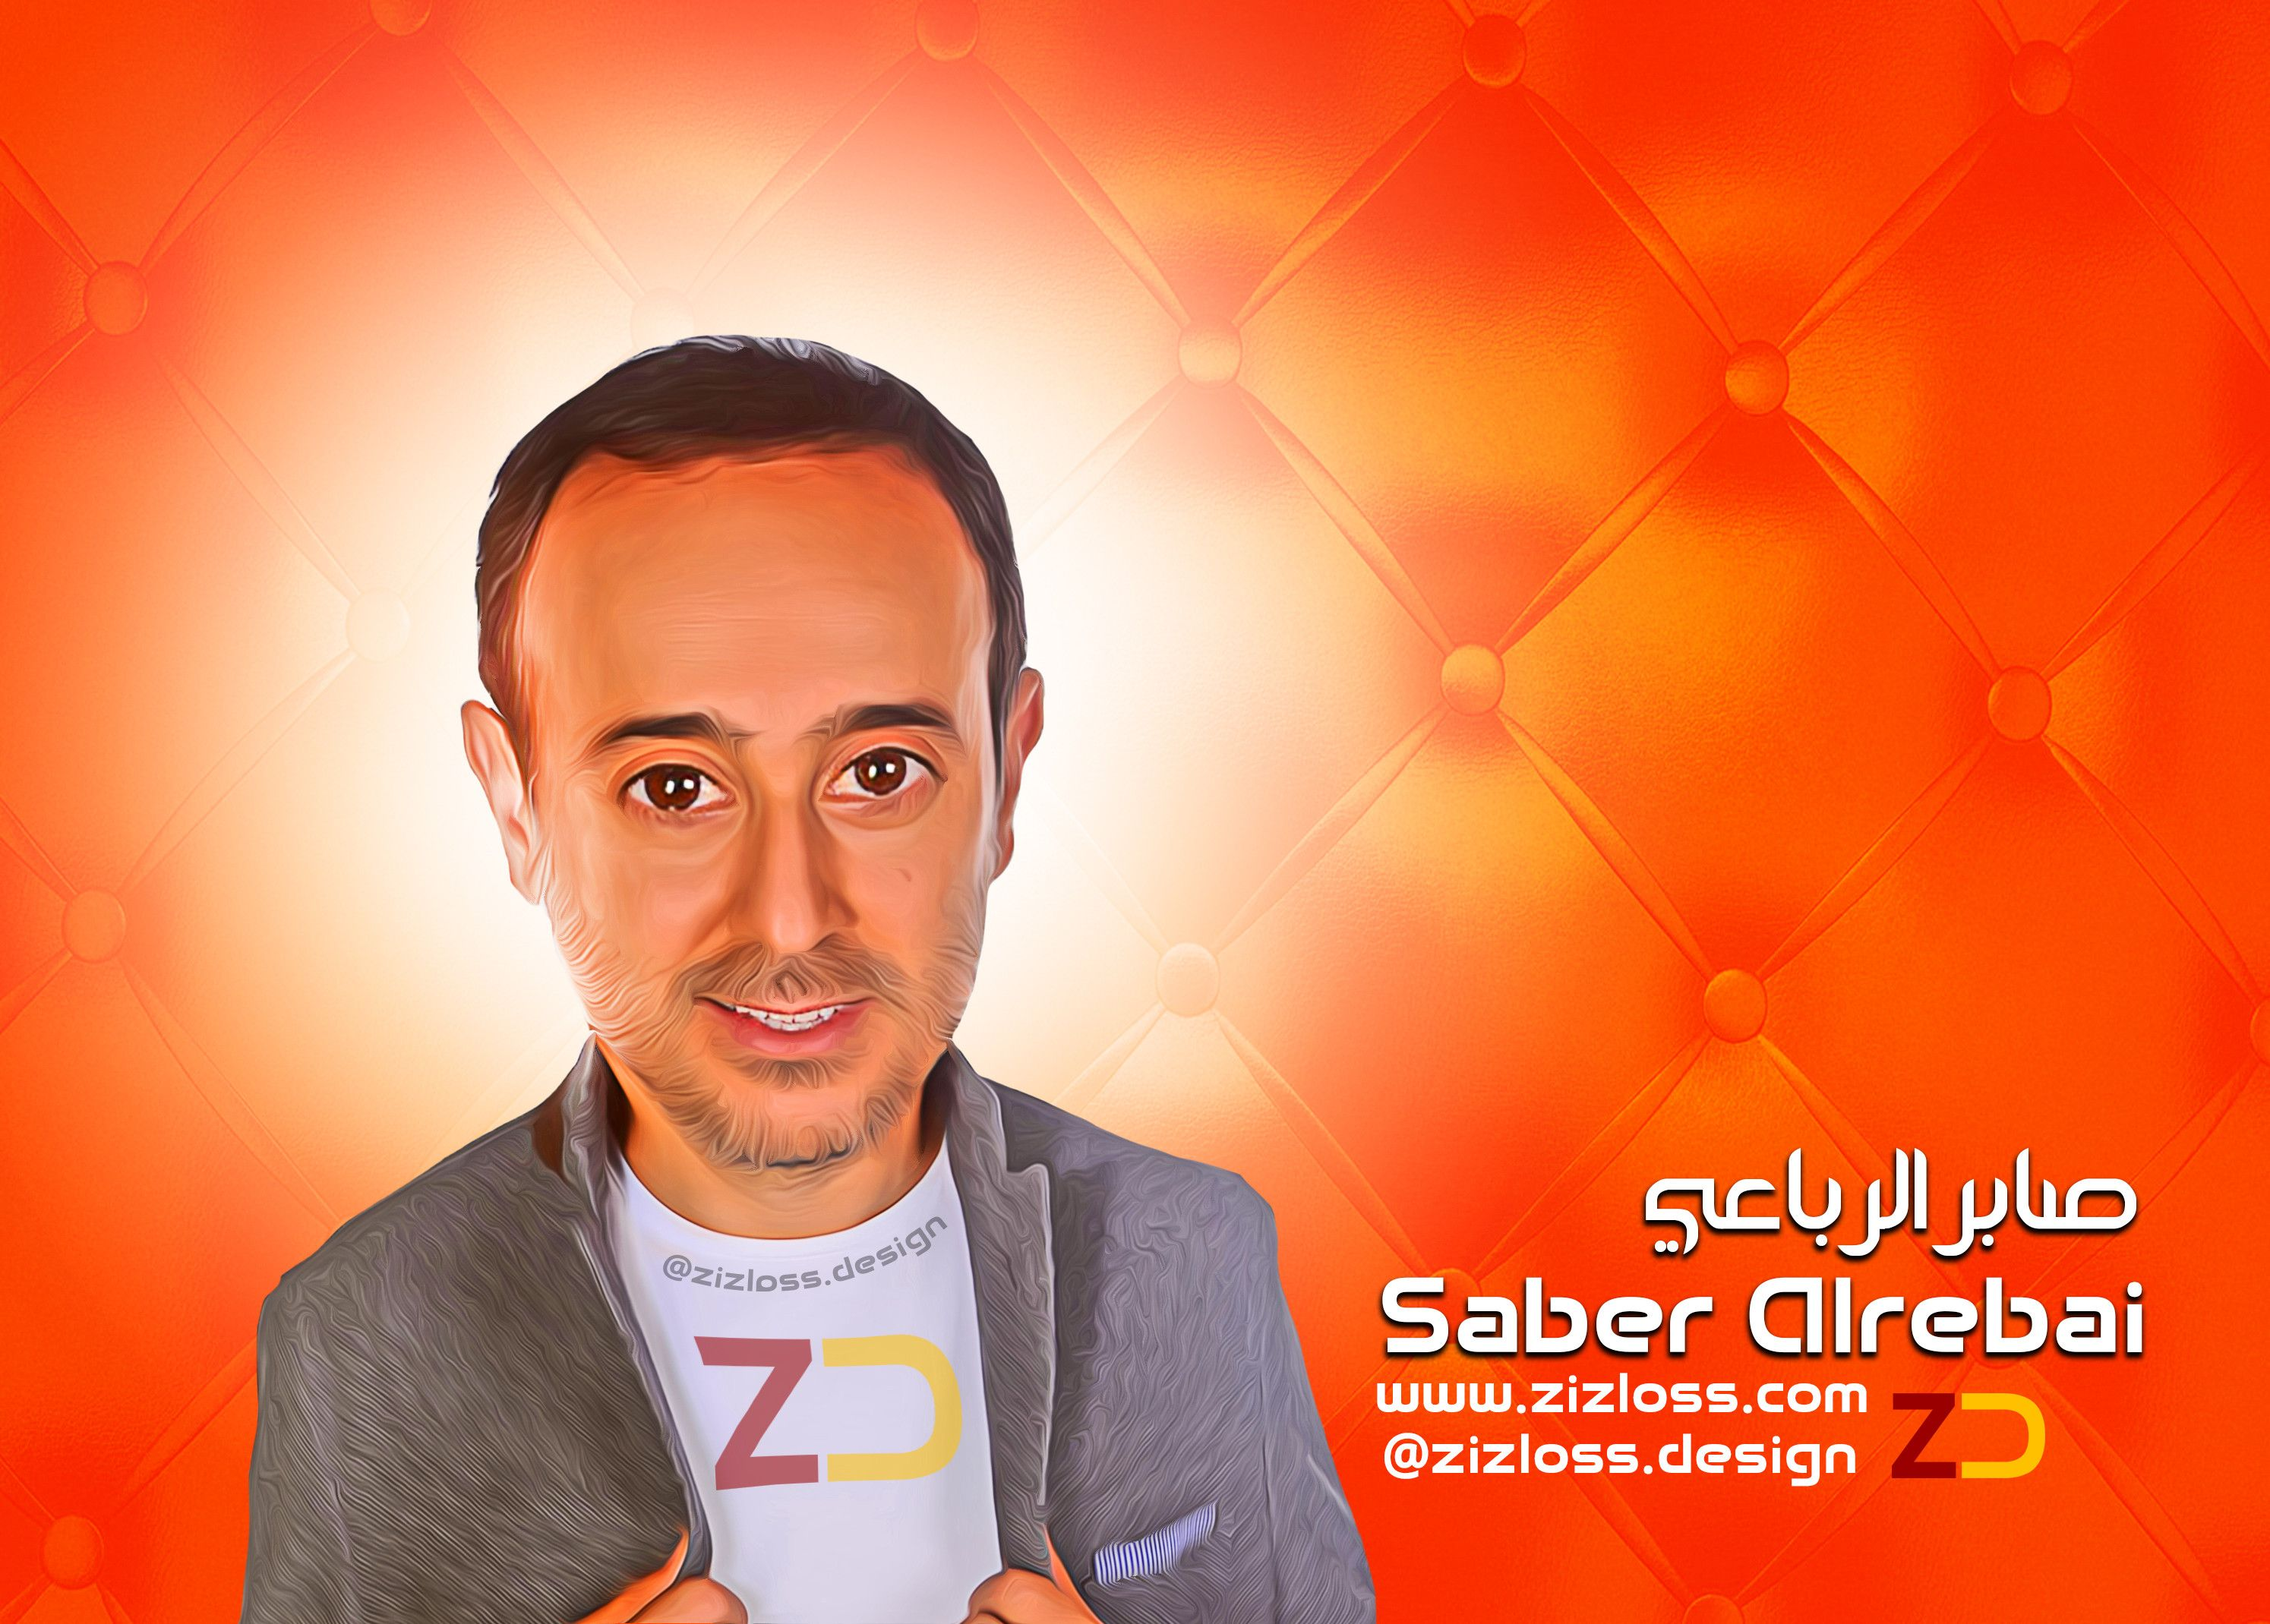 Saber Rebai صابر الرباعي Caricature Fictional Characters Character